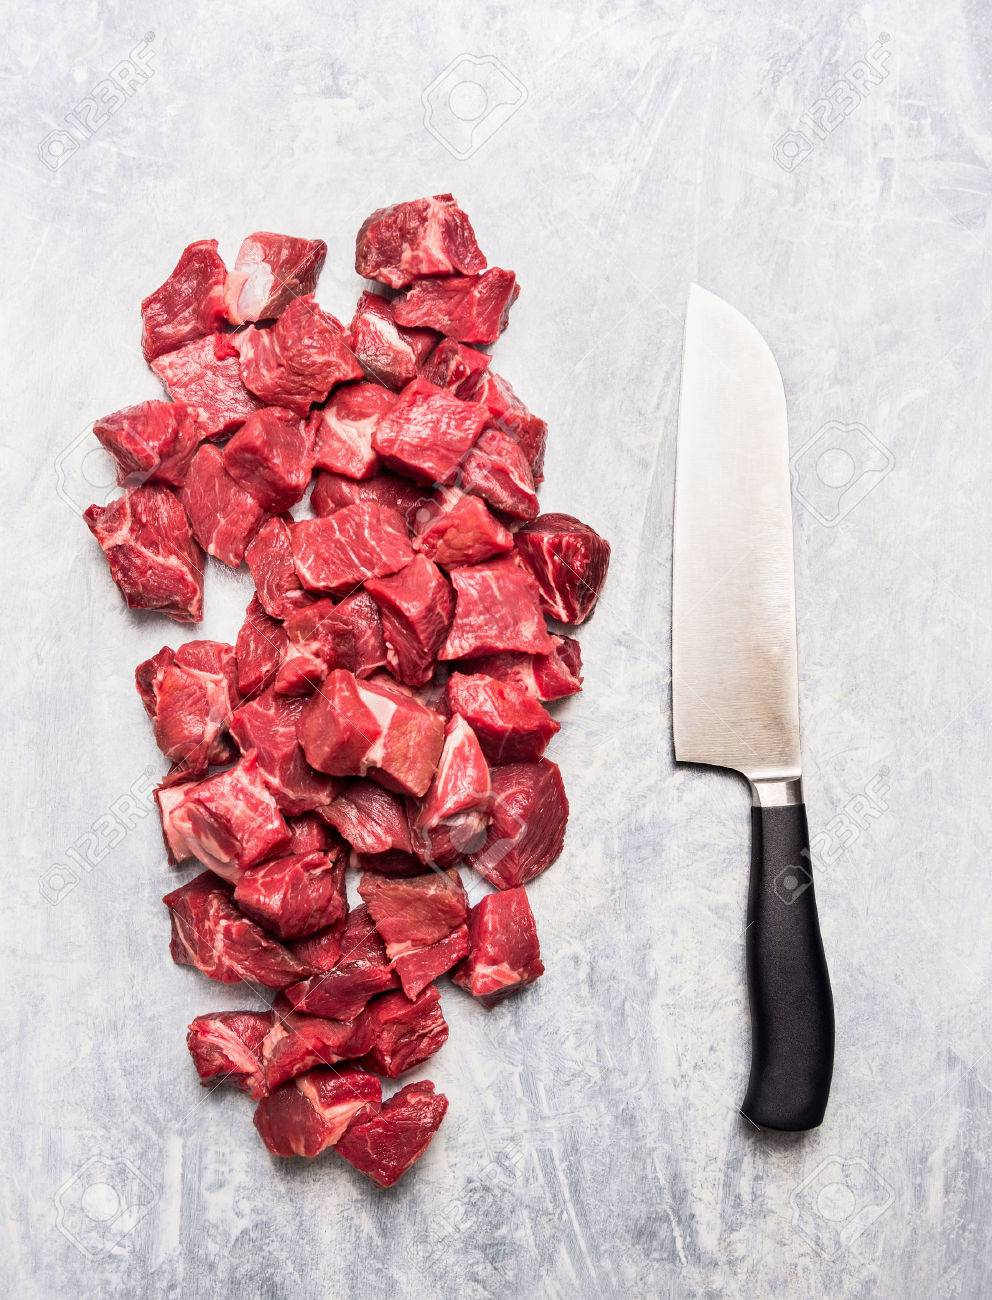 Raw Beef Goulash Meat Diced For Stew With Meat Knife On Light Gray Wooden Background Top